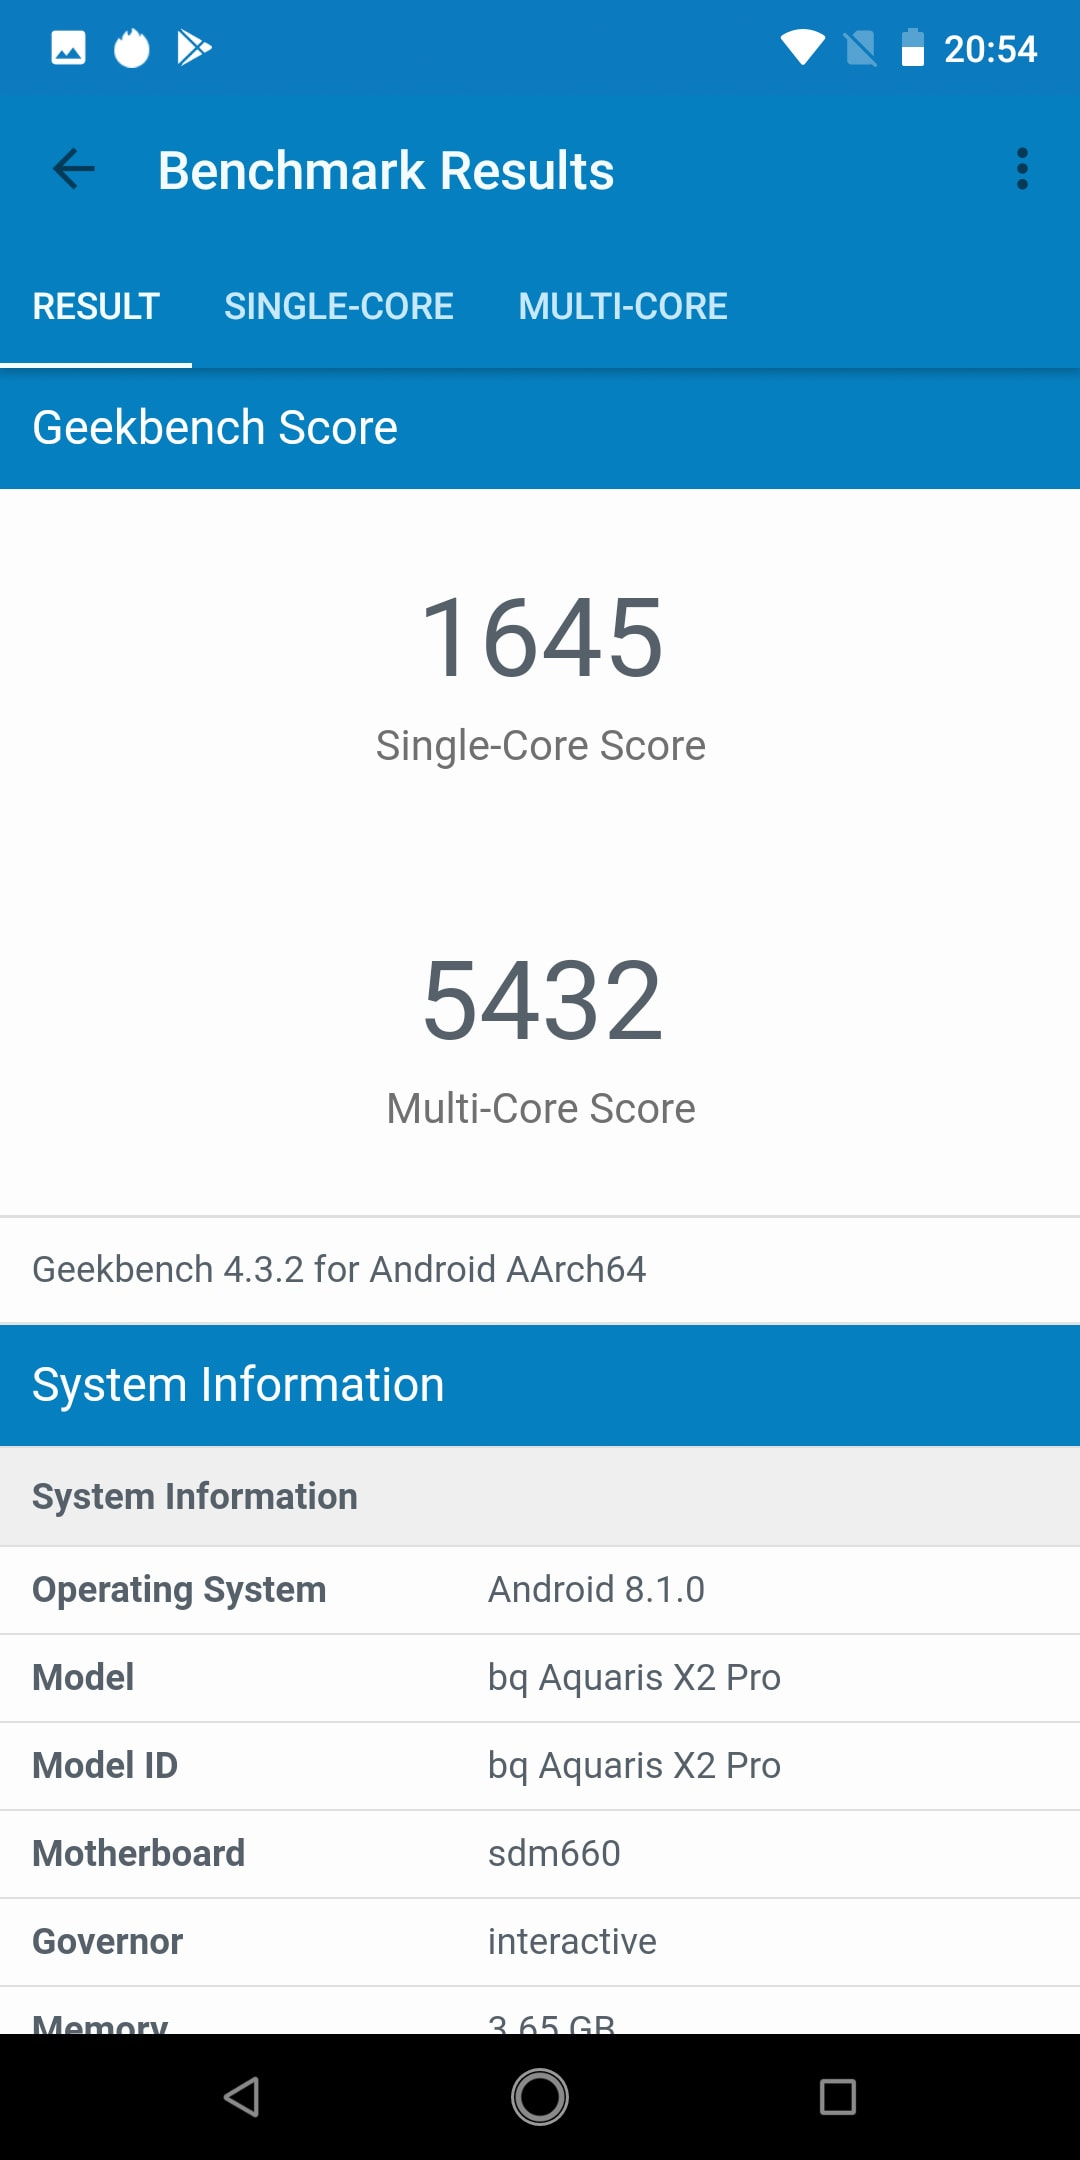 BQ Aquaris X2 Pro Benchmarktests 2